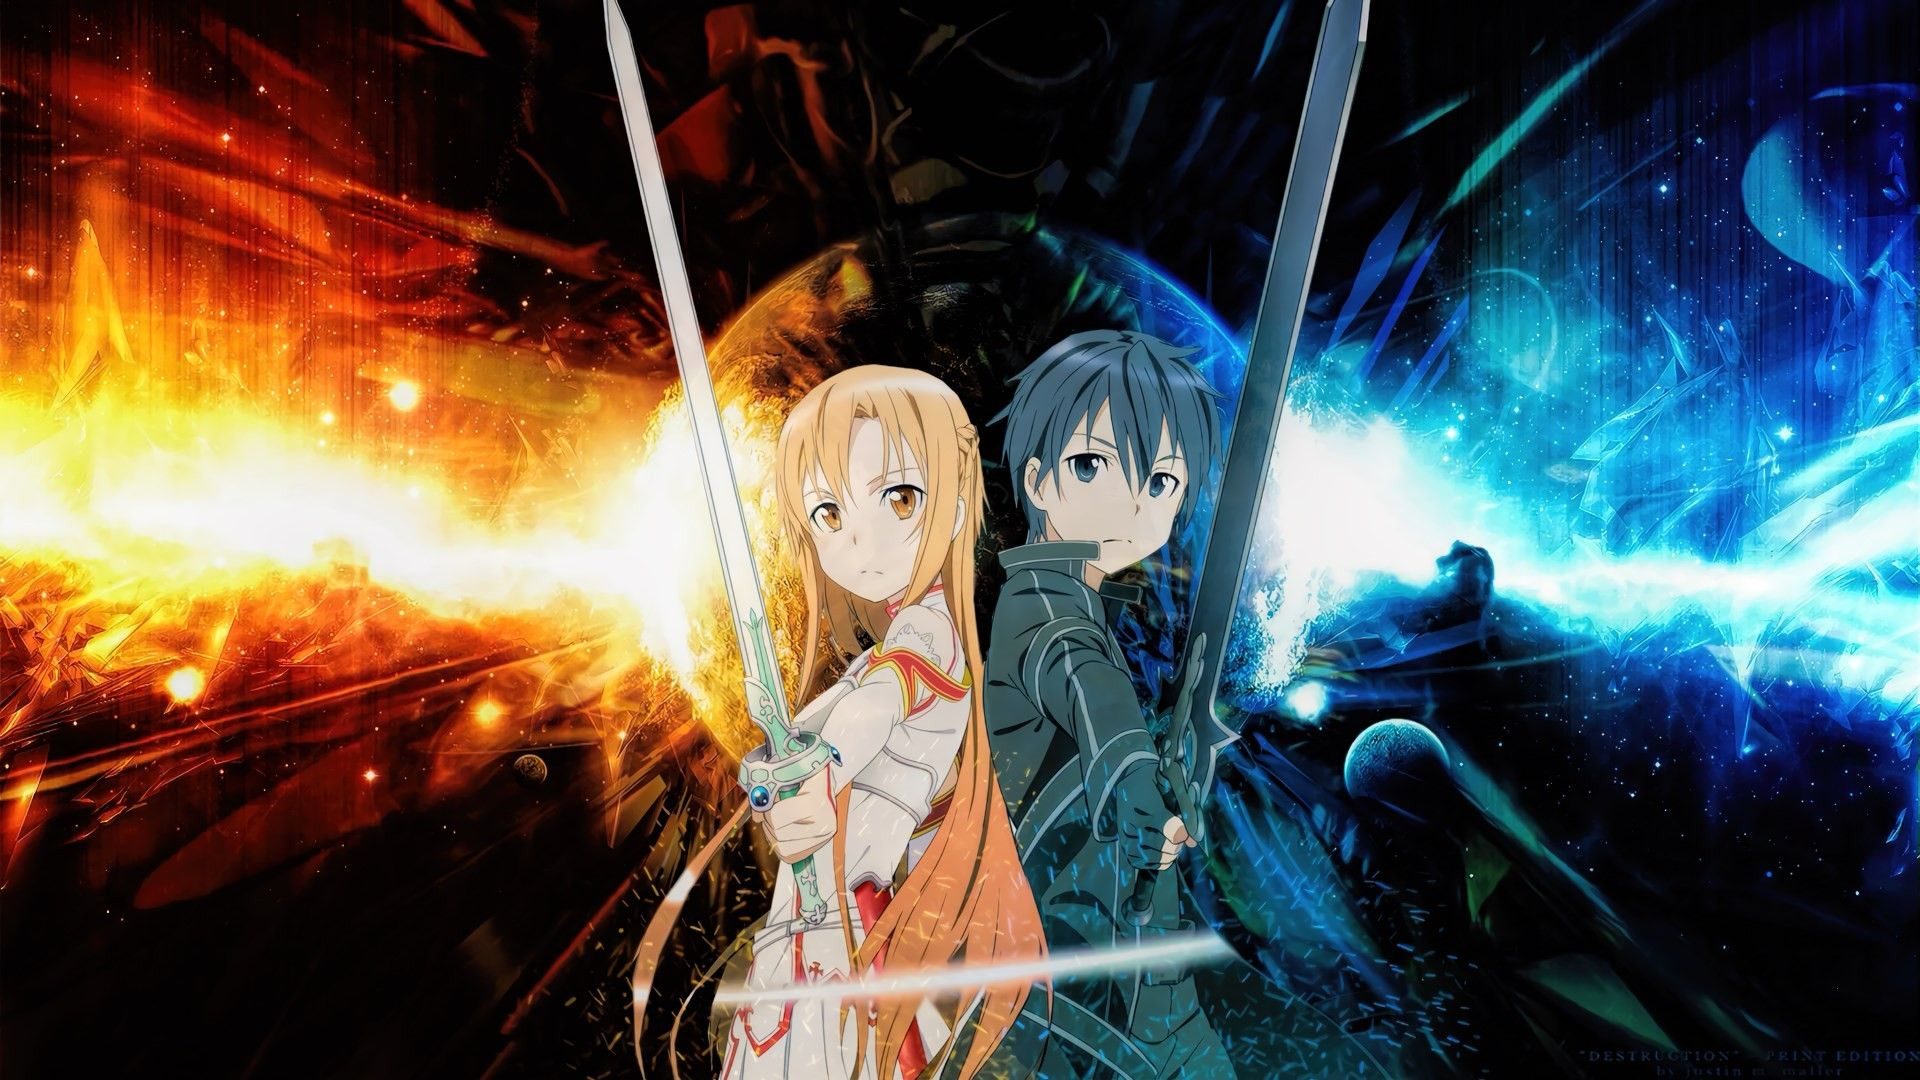 Sword Art Online Hd Wallpapers Sao Tab Theme Sword Art Online